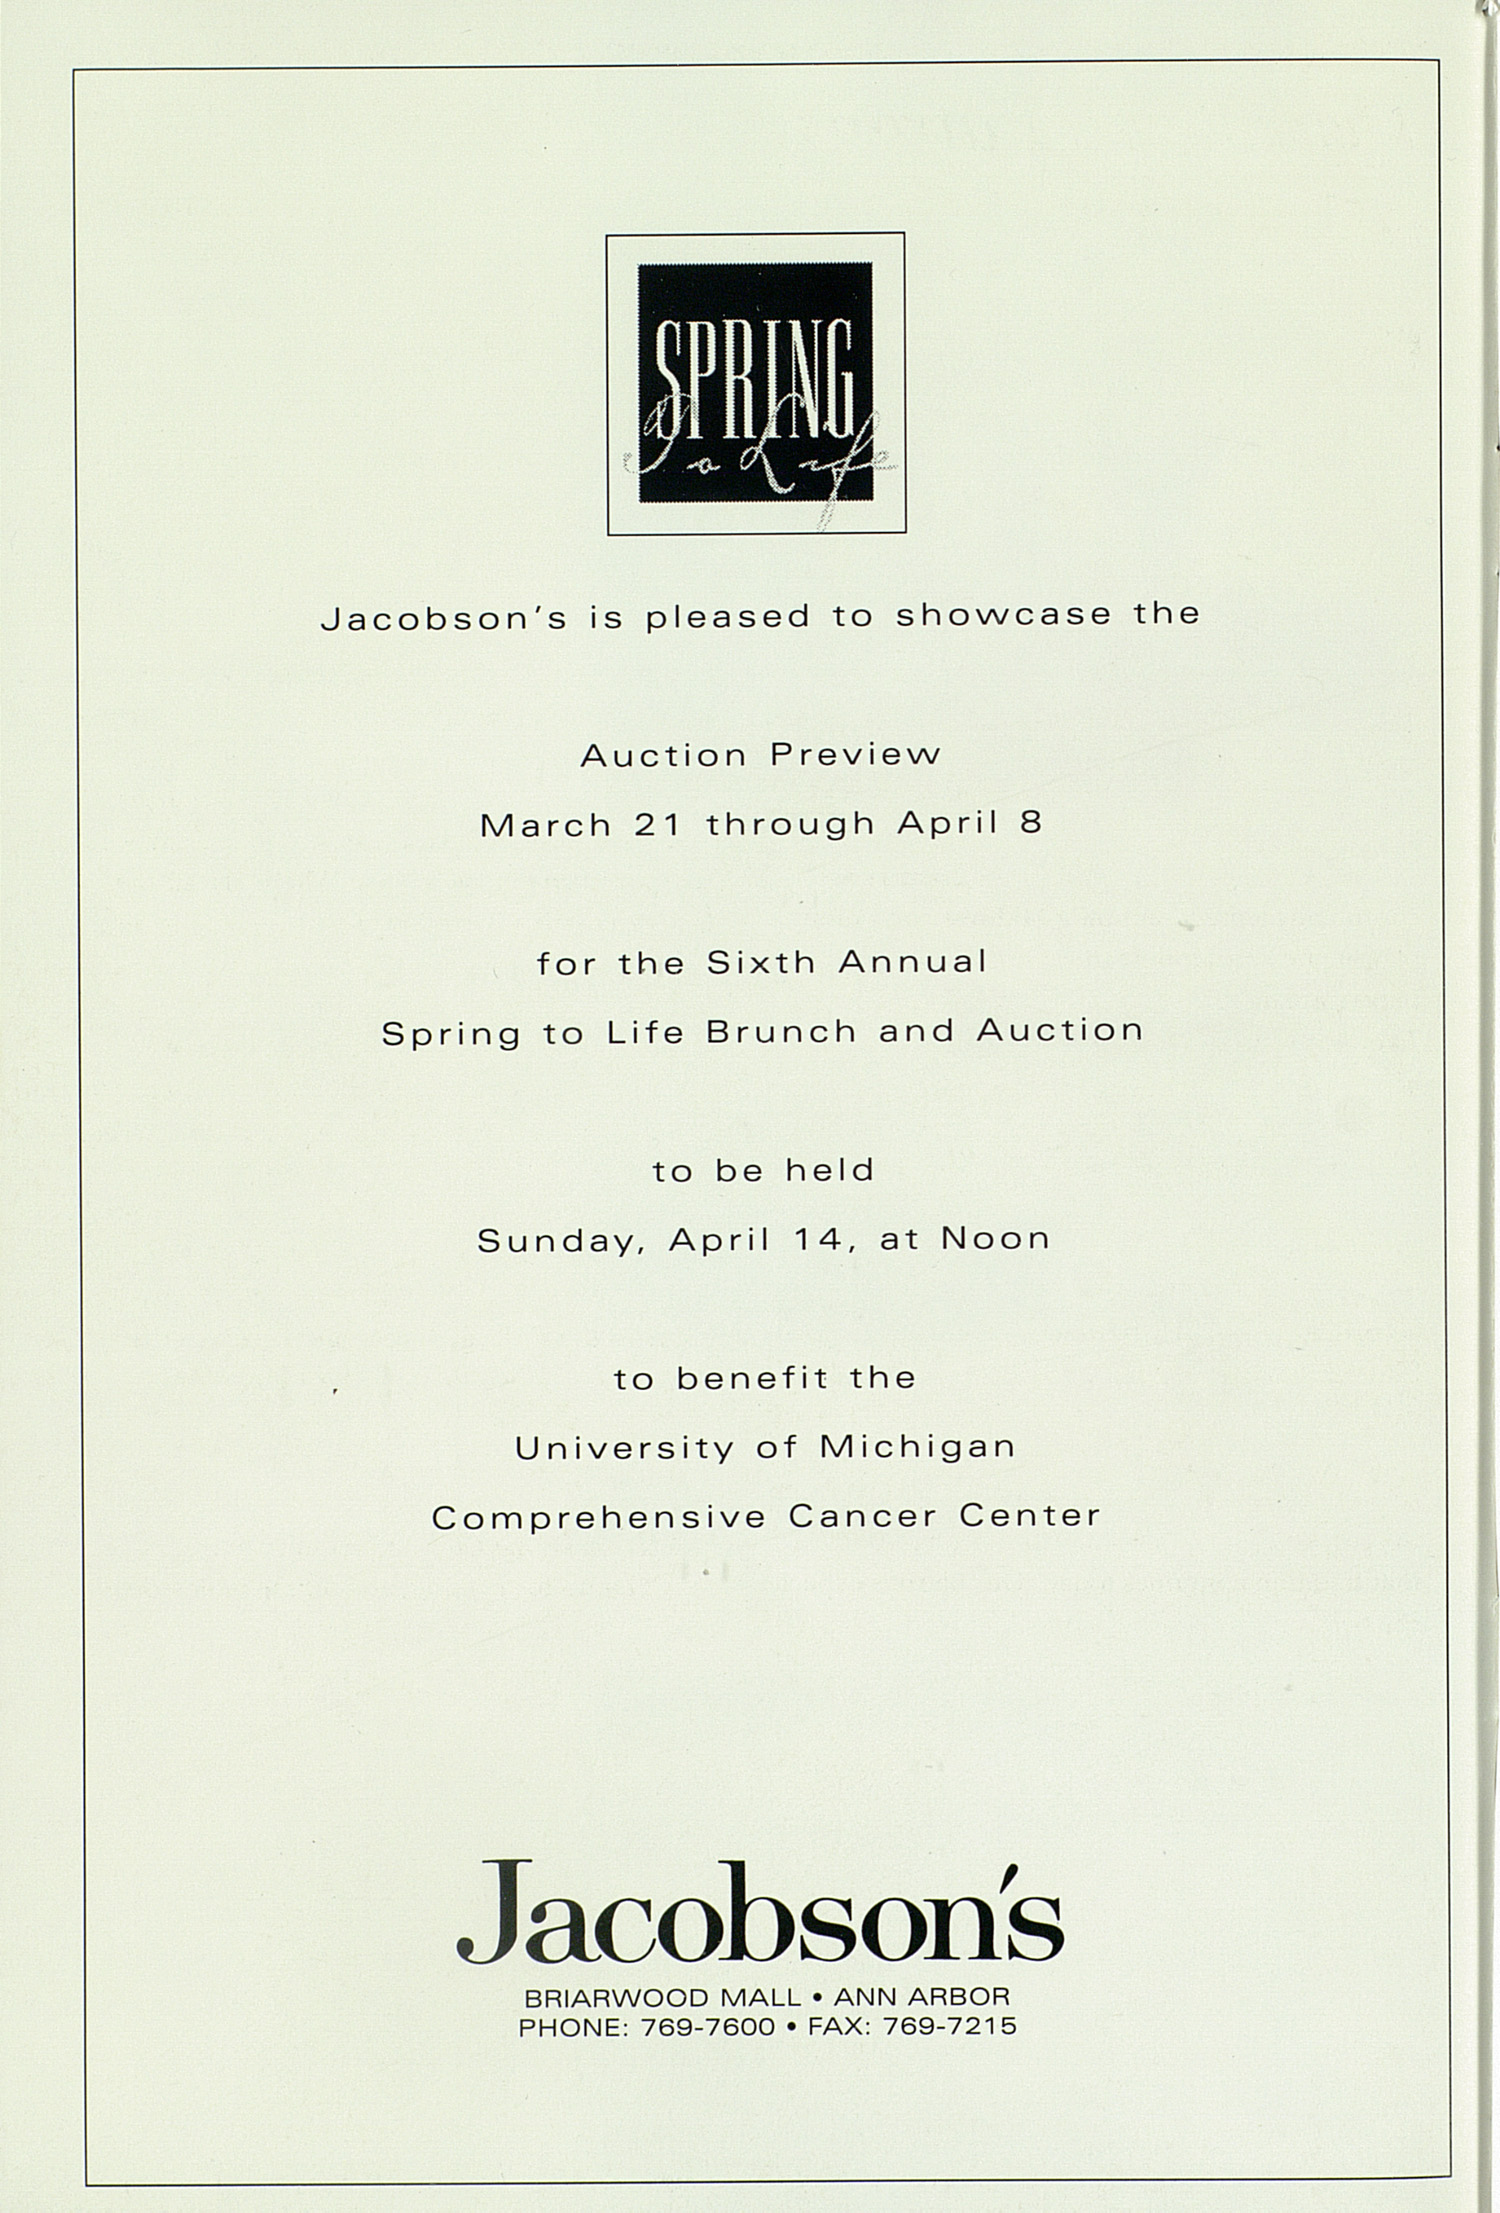 UMS Concert Program, Thursday Apr. 18 To 24: University Musical Society: 1996 Winter - Thursday Apr. 18 To 24 --  image